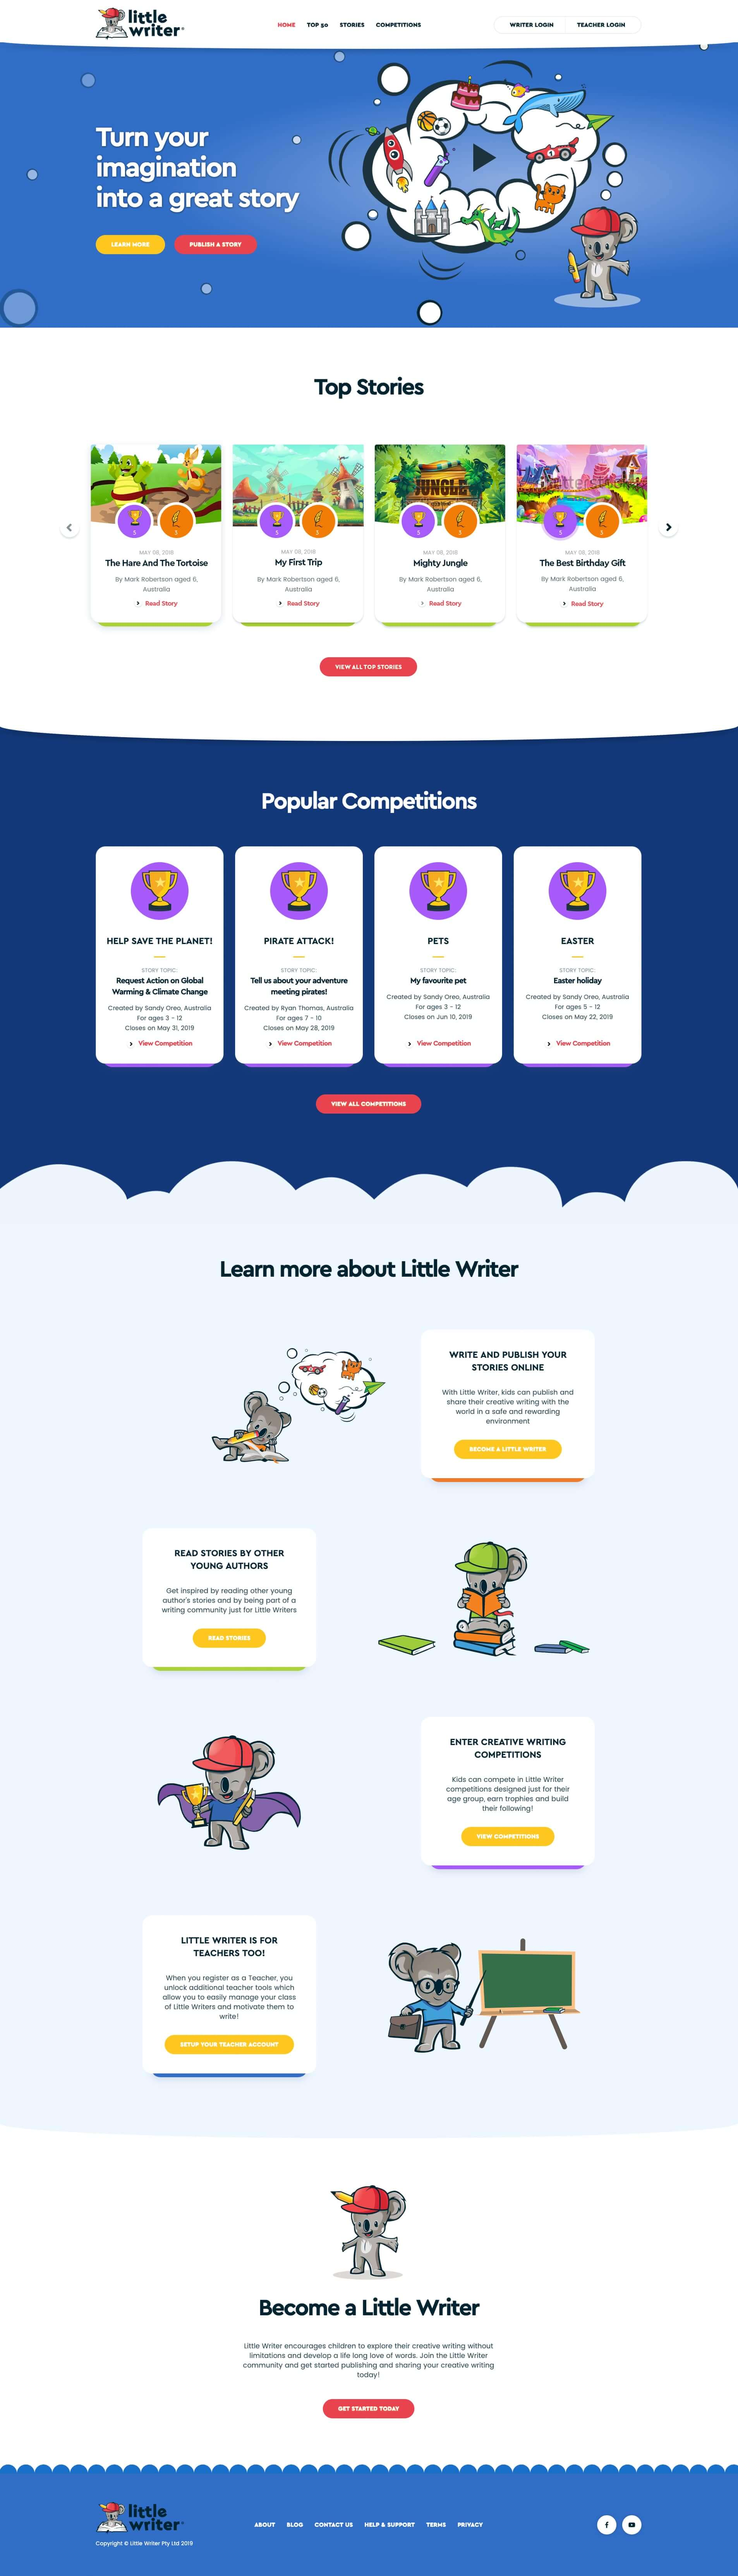 Little writer home page